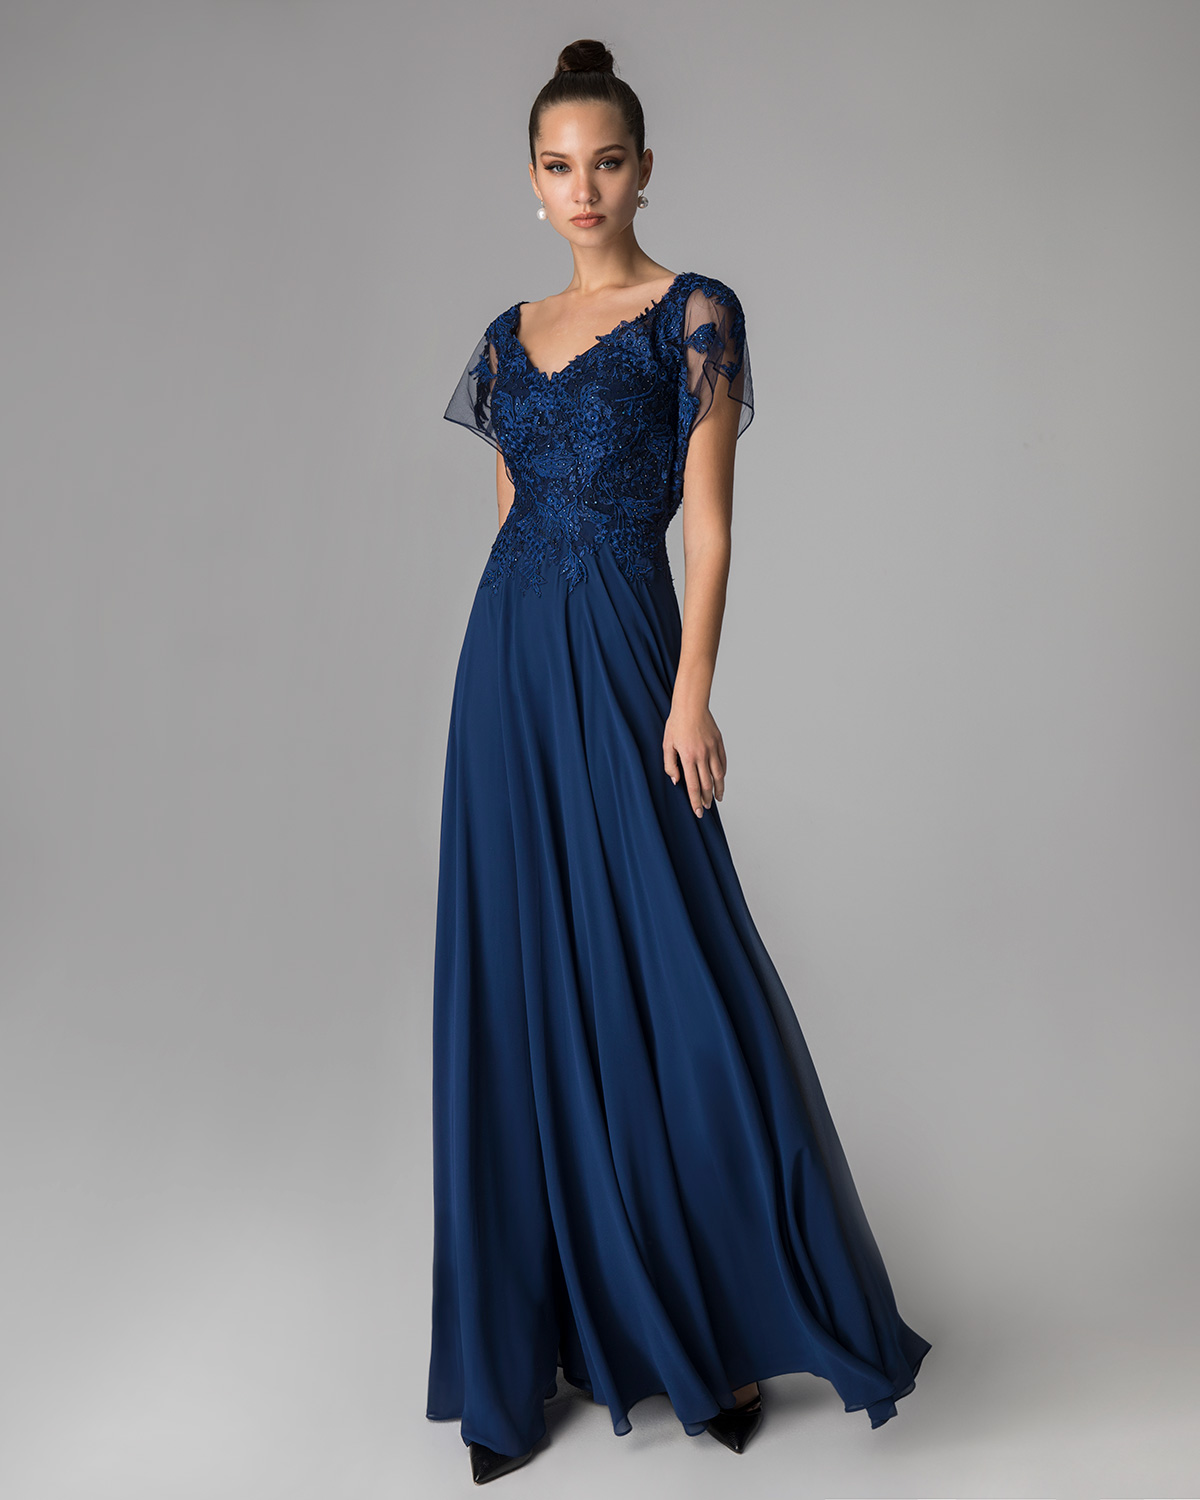 Classic Dresses / Long evening dress with applique lace on the top and  short sleeves